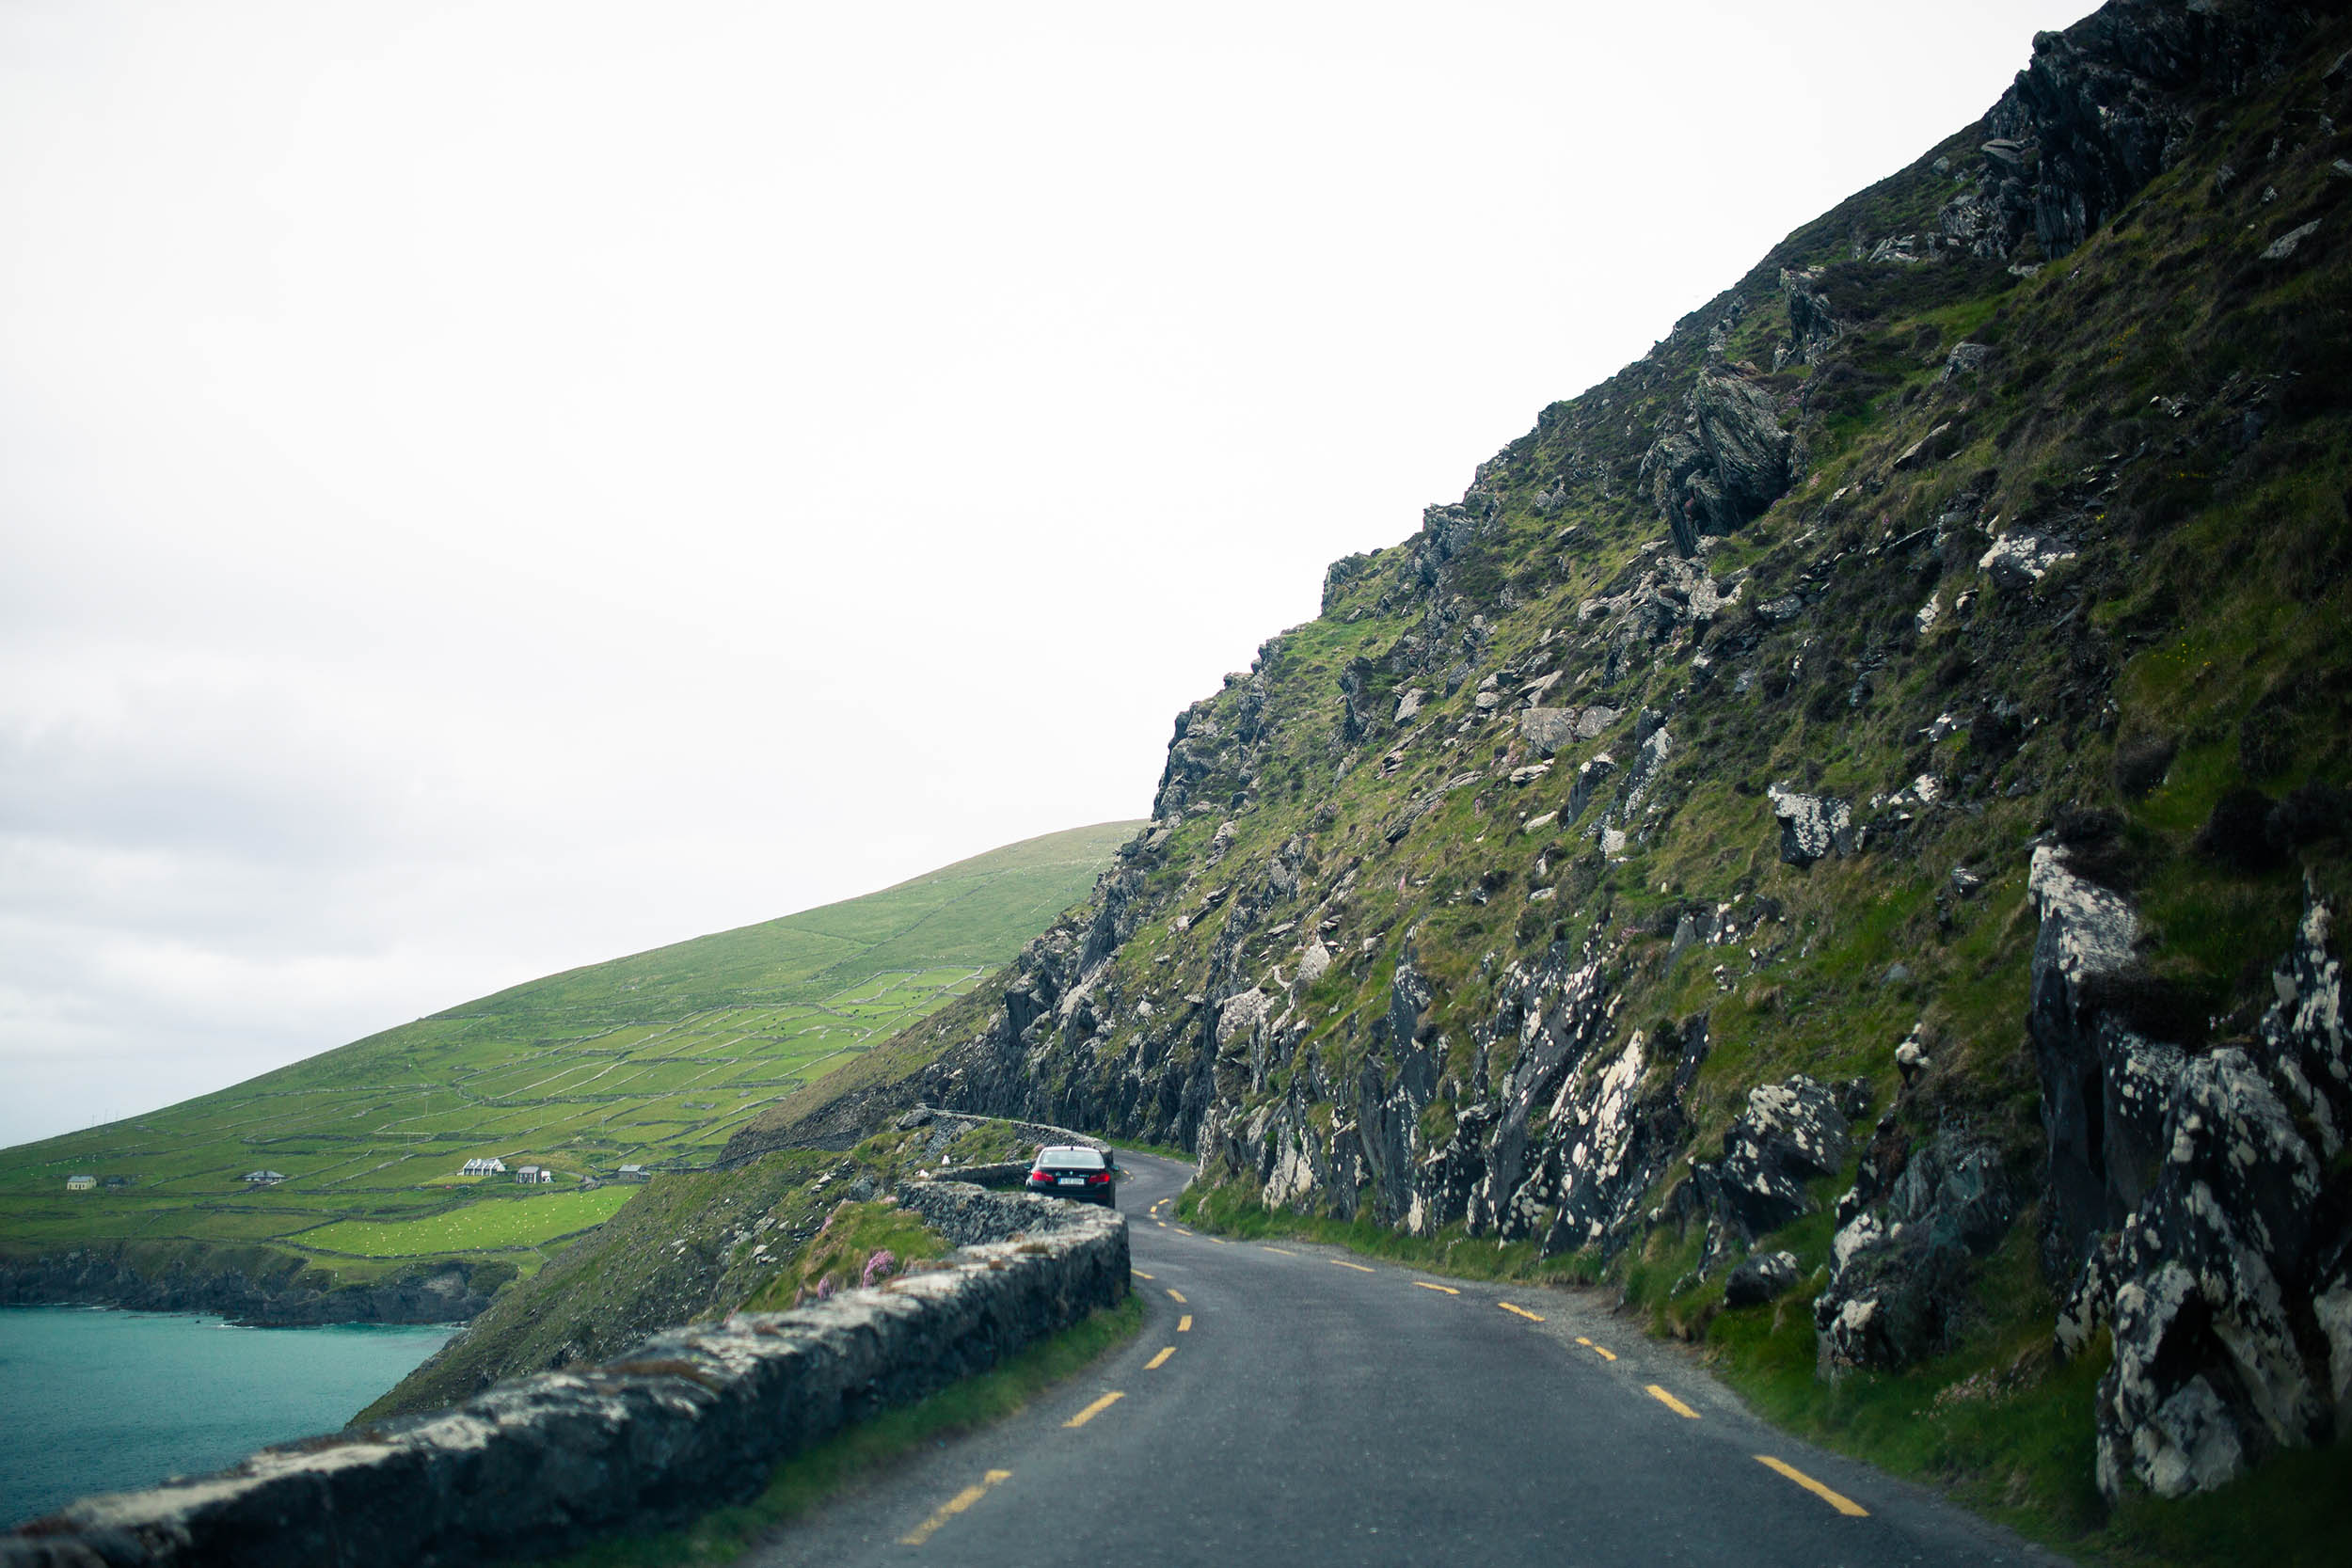 IRELAND_KERRY_SLEAHEAD_0021